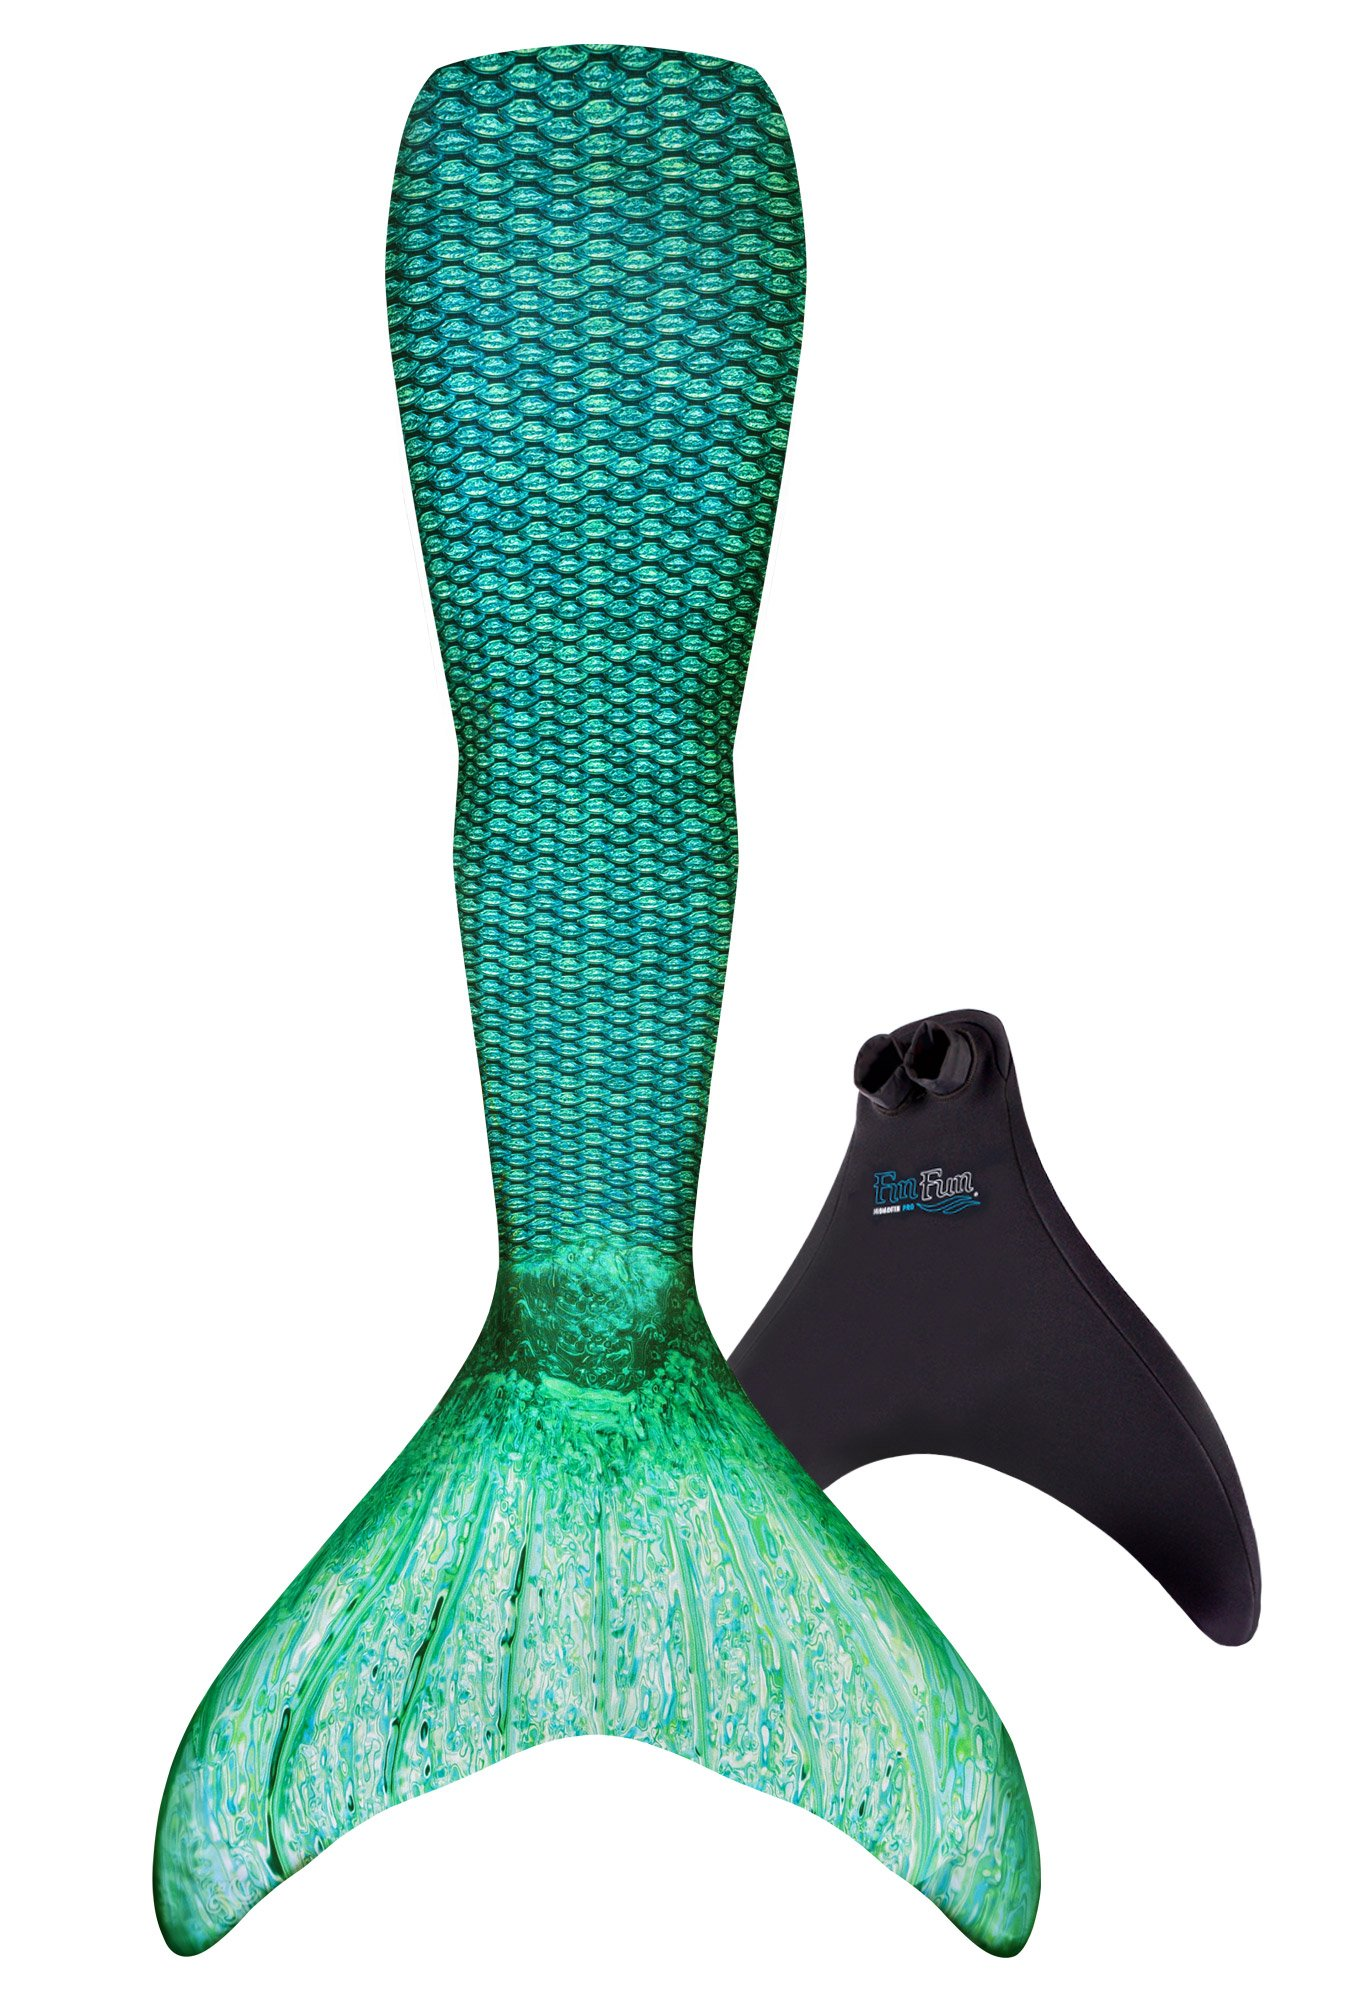 Fin Fun Mermaid Tail, Reinforced Tips, Monofin, Celtic Green, Size Adult XS